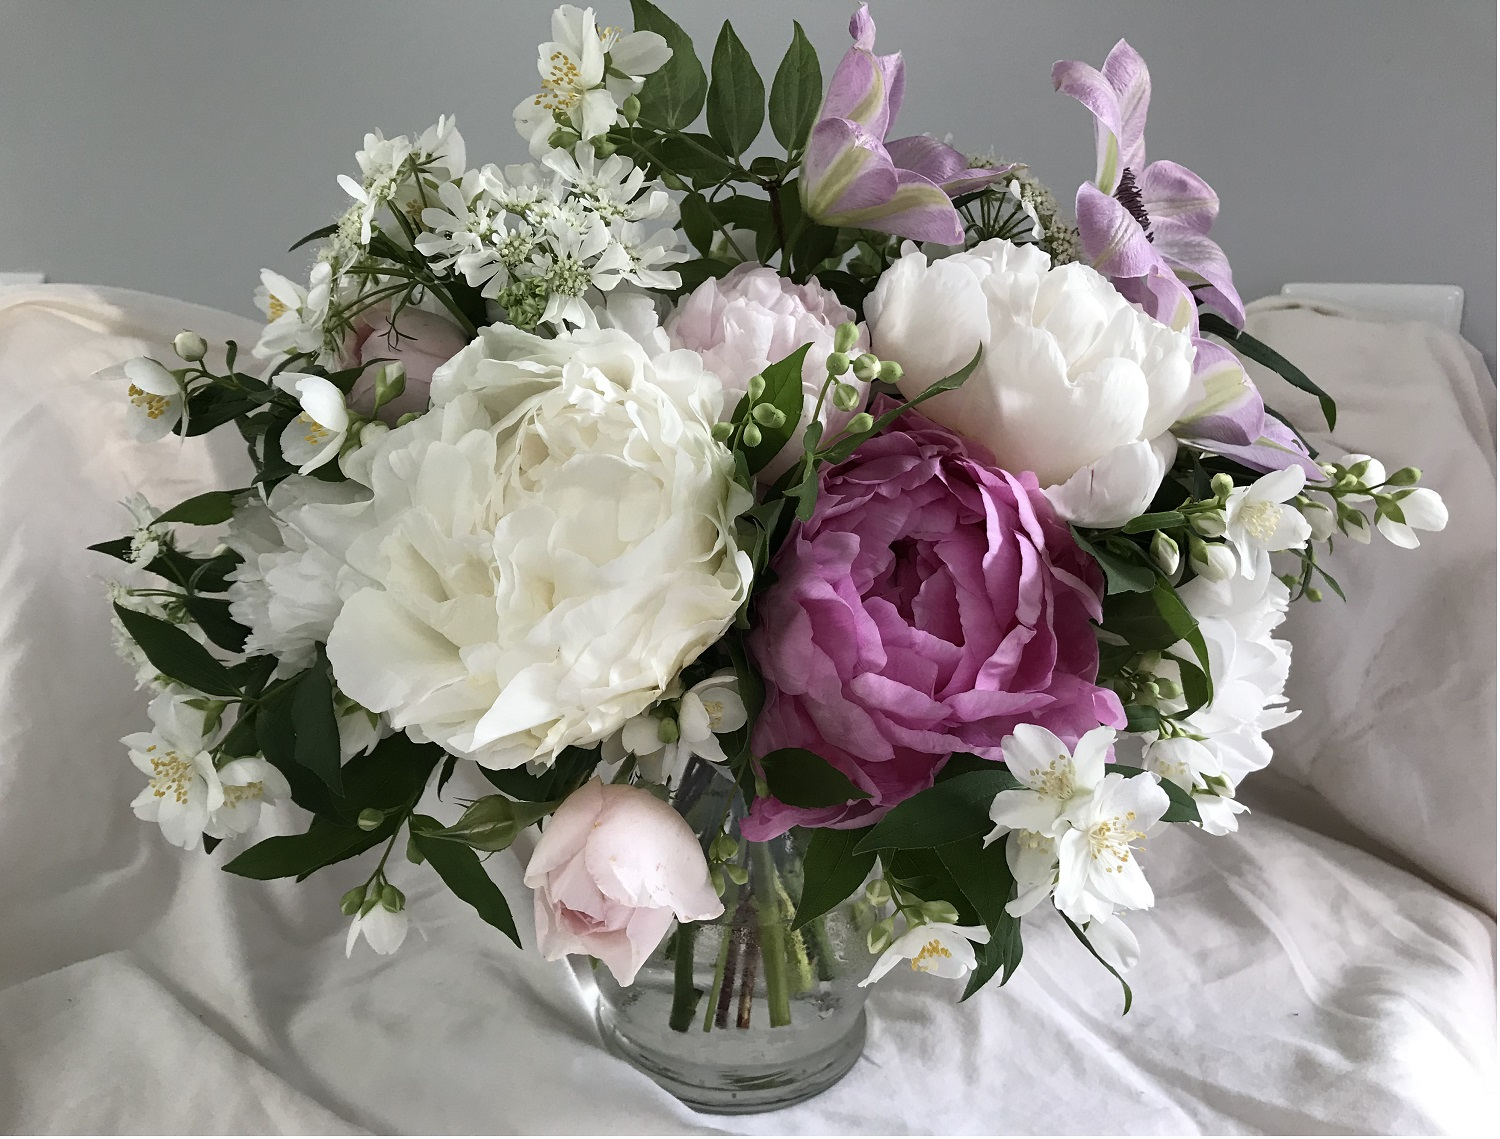 Connor's bouquet—peony, rose, clematis, orlaya, mock orange